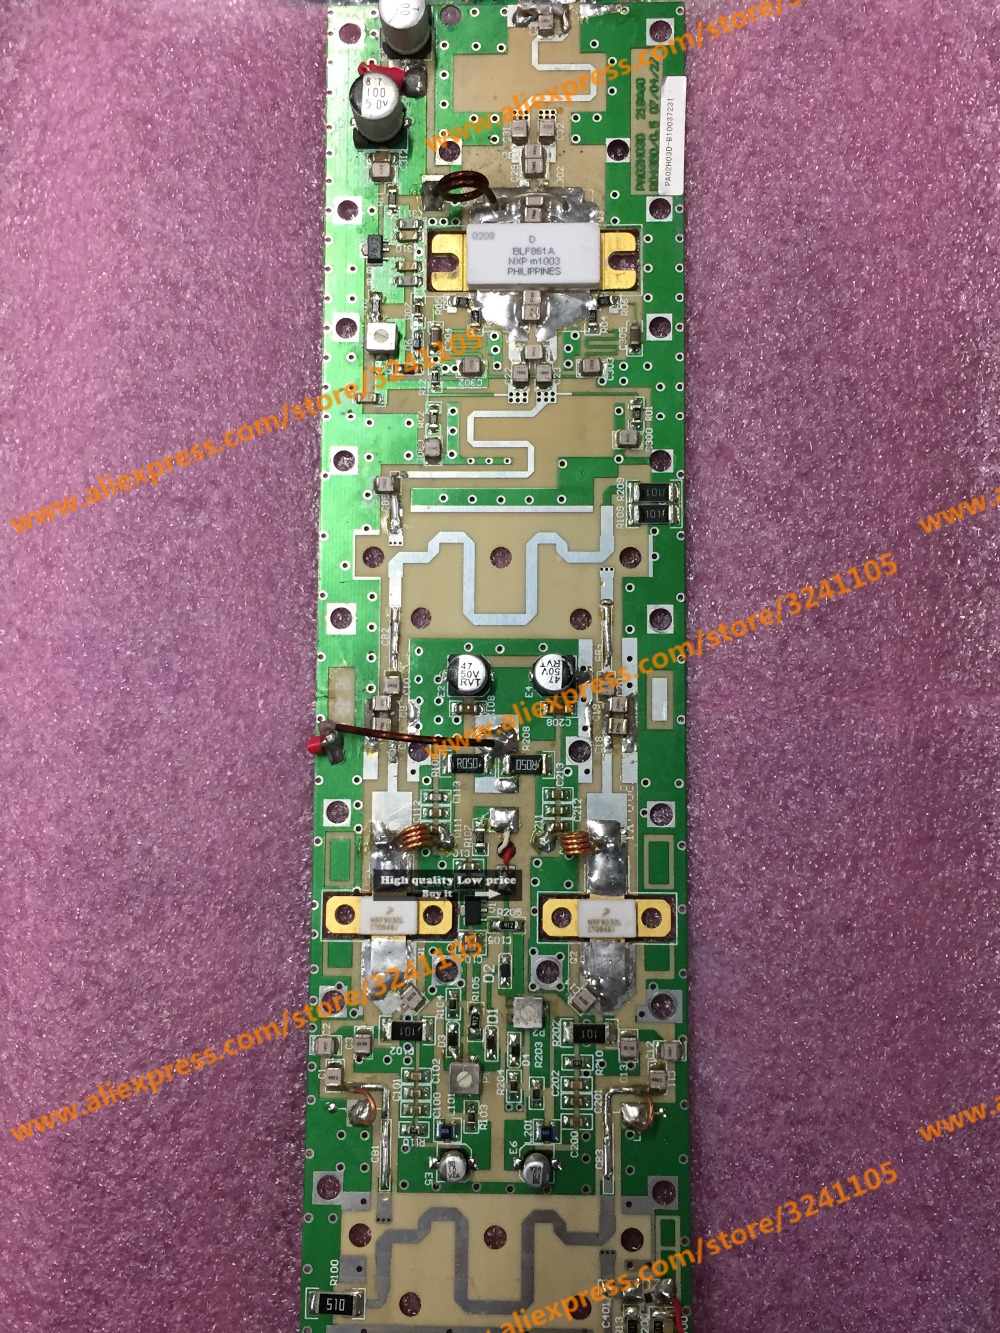 цена на Free shipping  MRF9030L BLF861A  board module test good Second-hand motherboard high demand buyer please do not buy